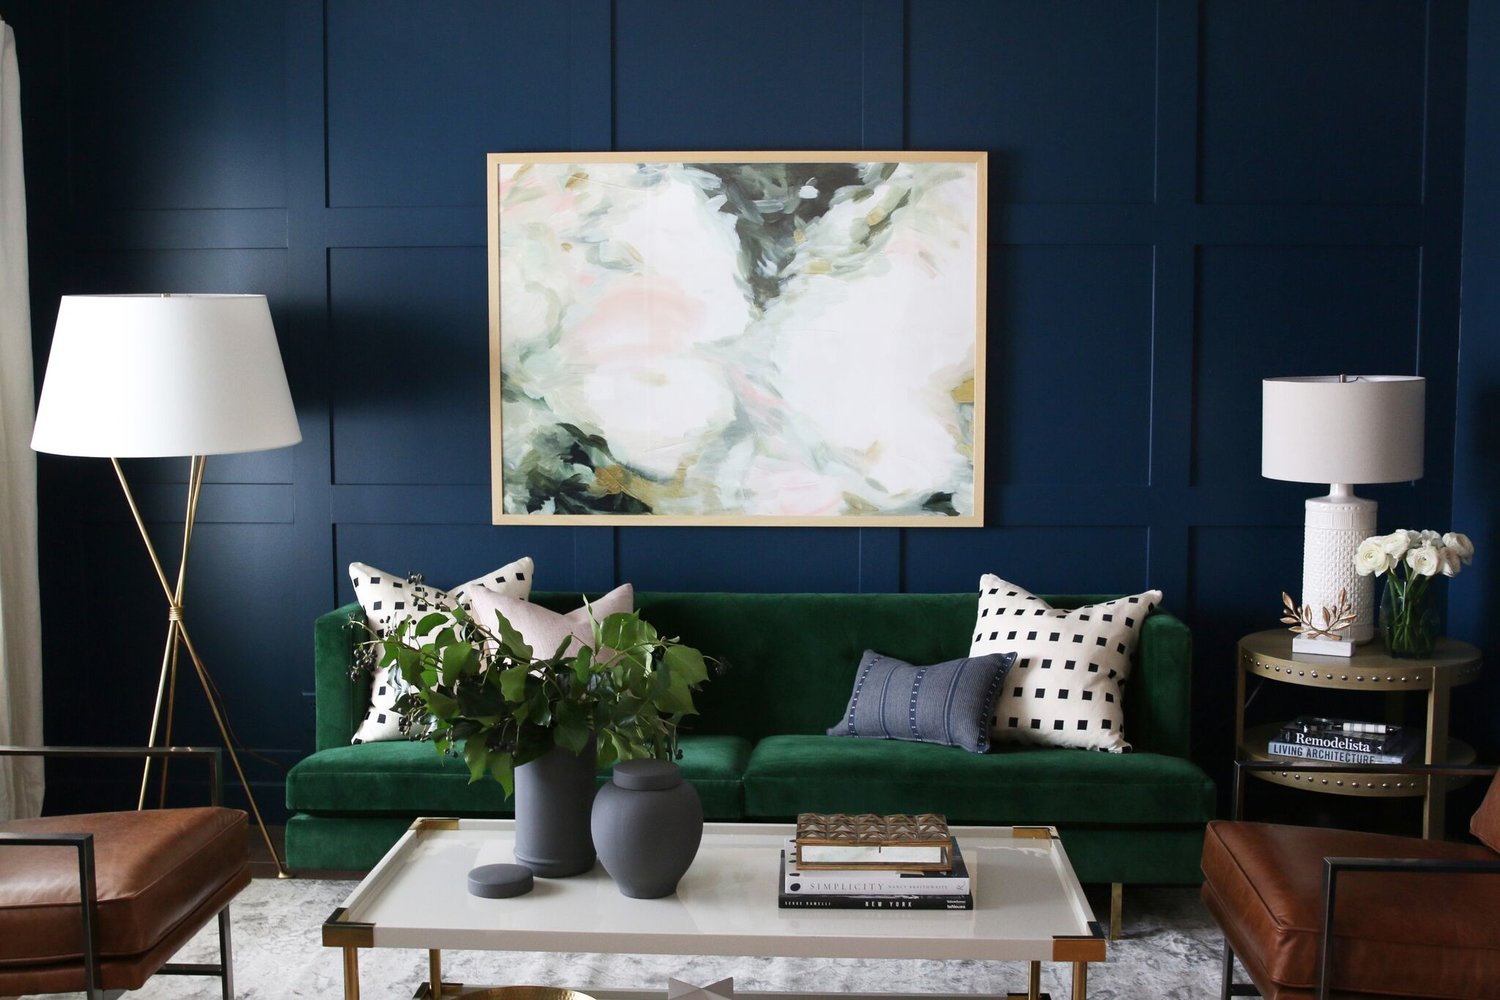 Green couch with white lamp next to it